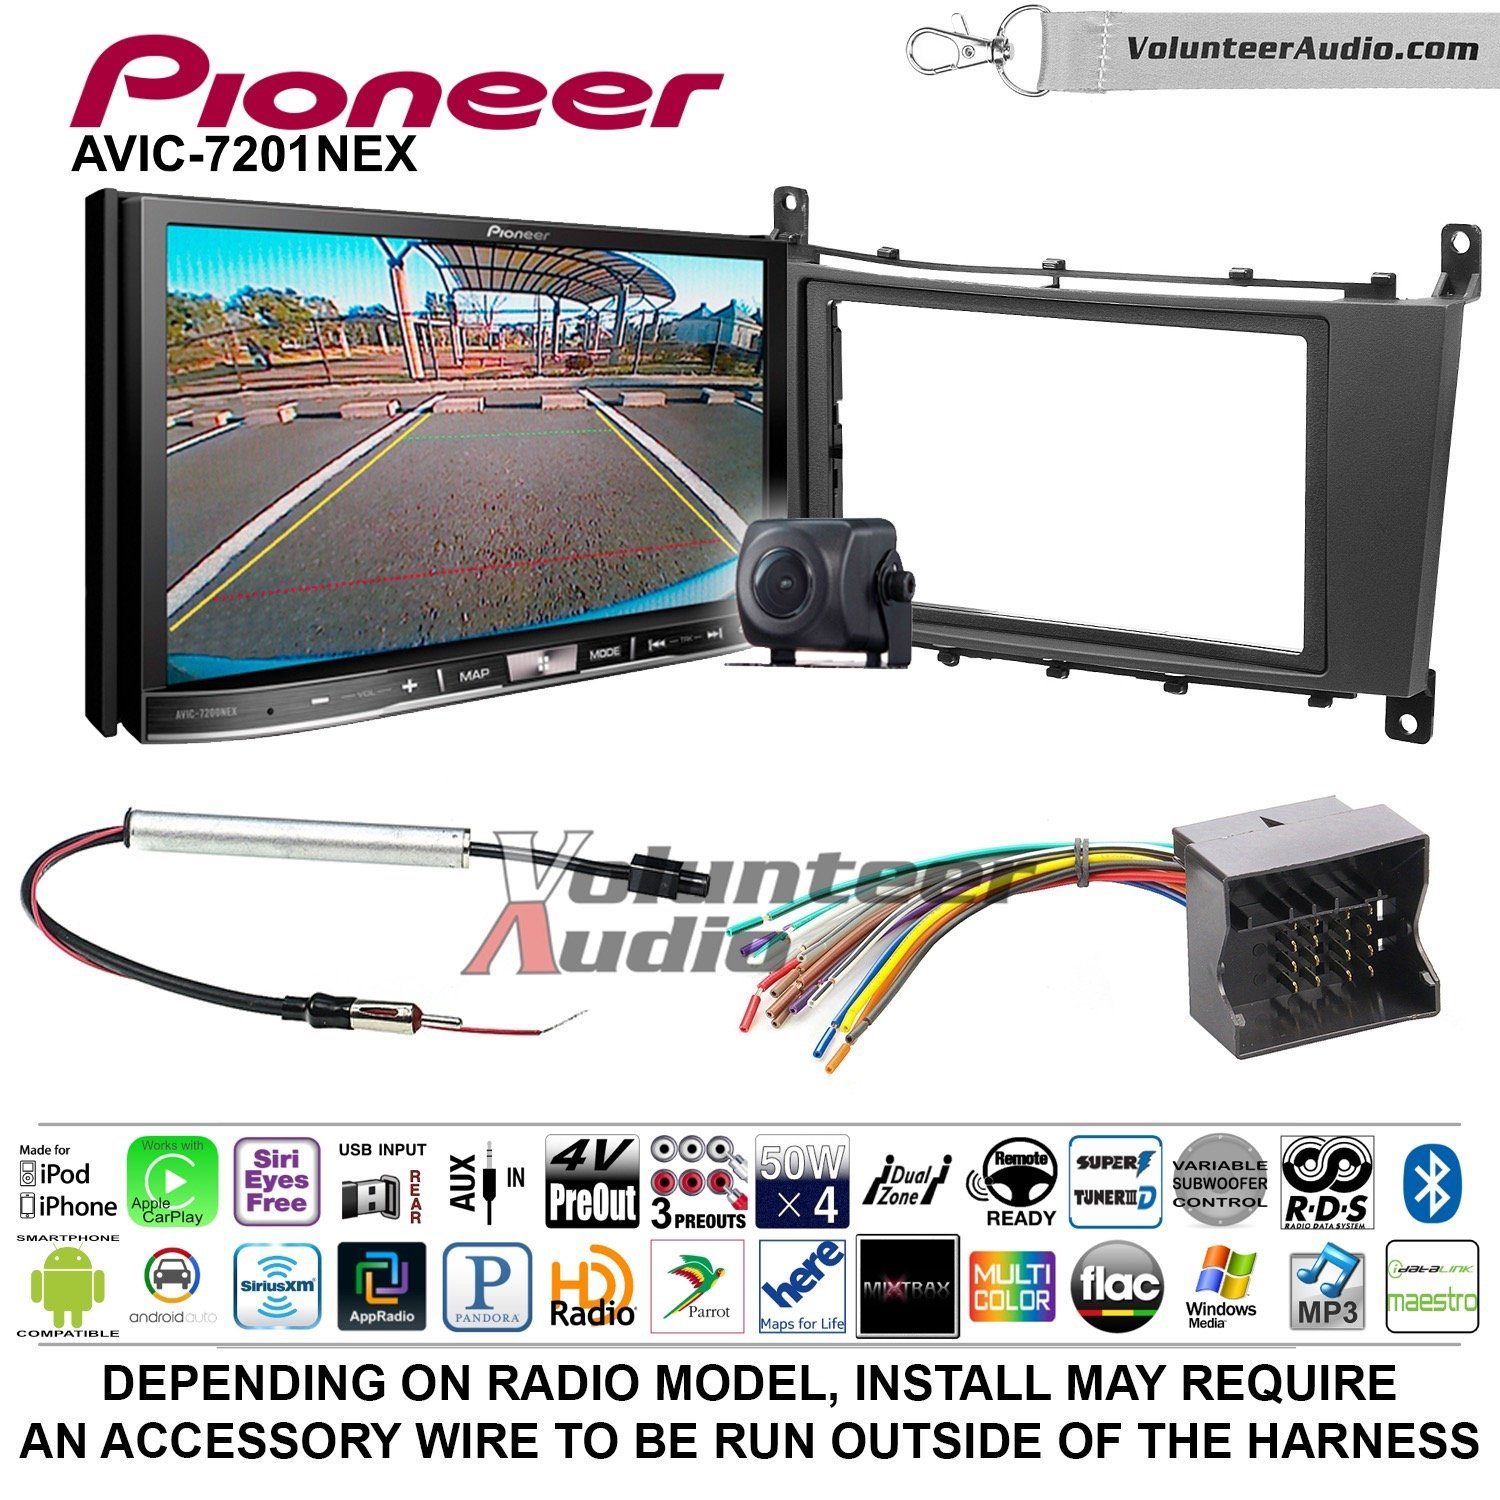 Pioneer AVIC-7201NEX Double Din Radio Install Kit with GPS Navigation Apple CarPlay Android Auto Fits 2005-2007 Mercedes C Series by Pioneer Volunteer Audio (Image #1)